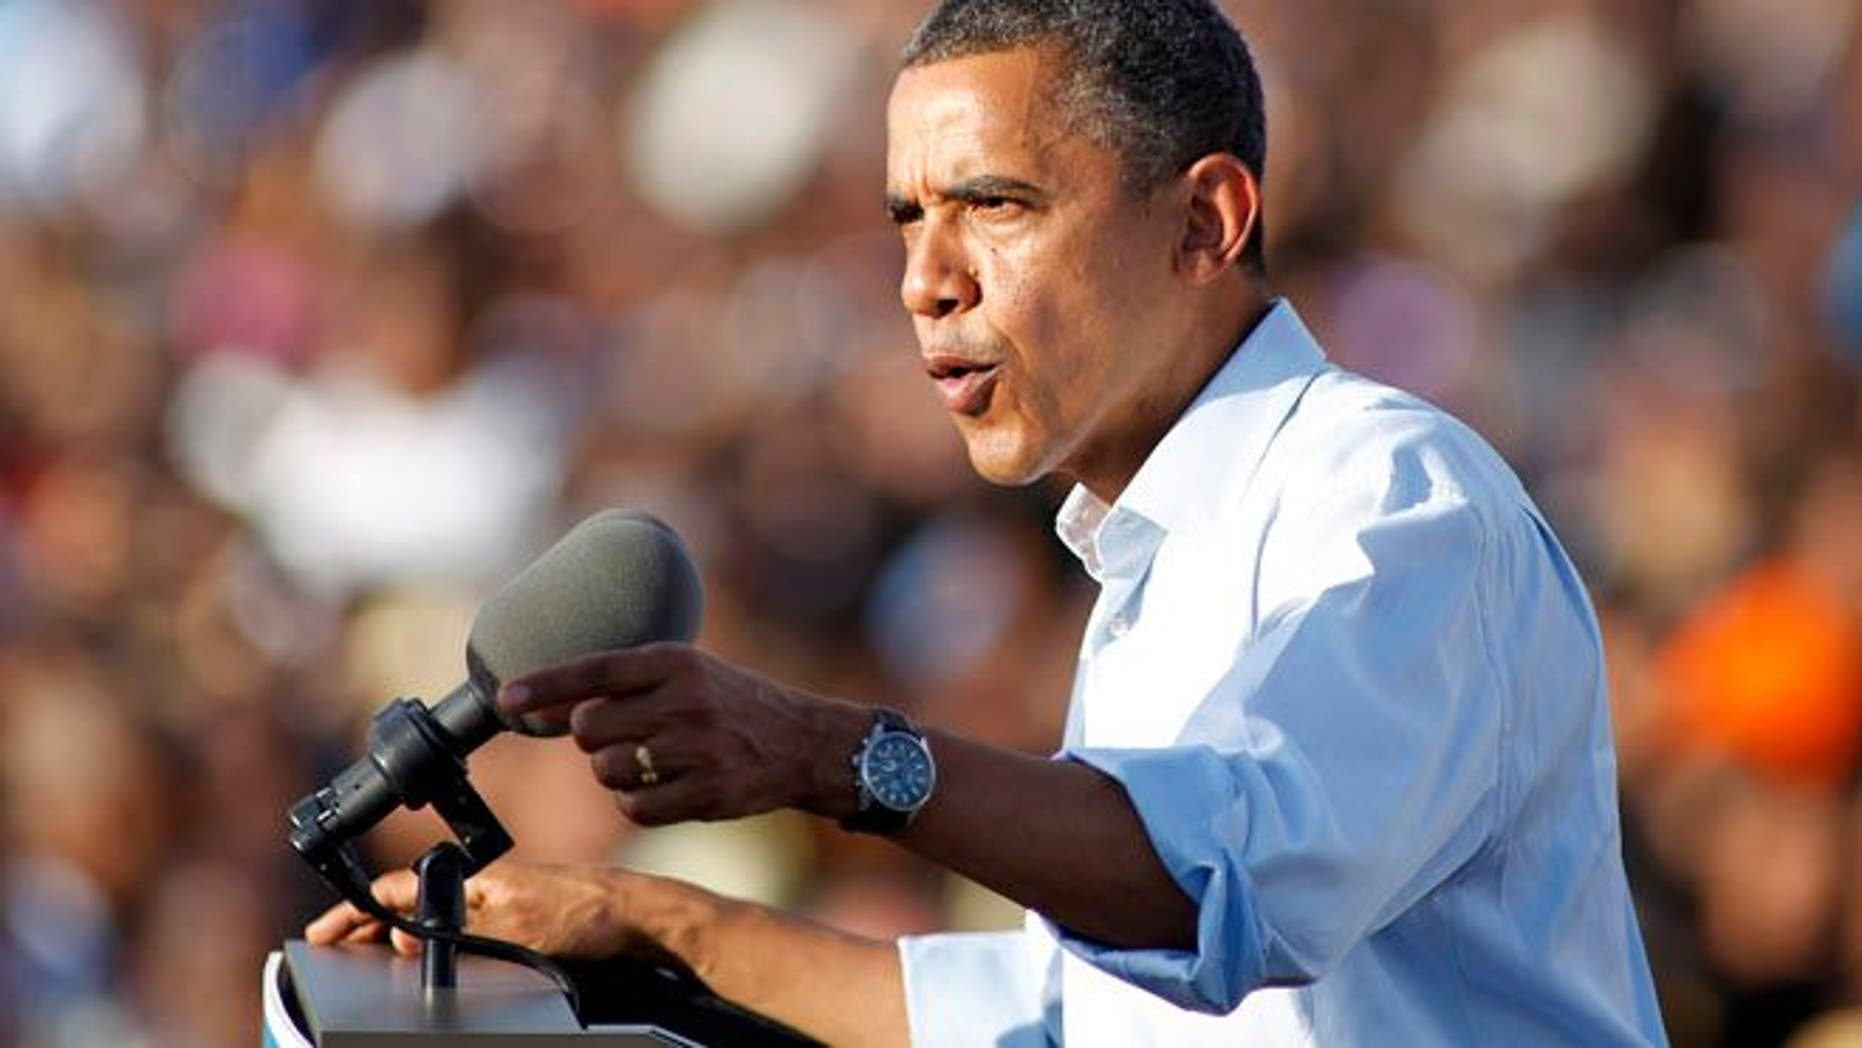 Nov. 4, 2012: President Barack Obama speaks during a campaign event at McArthur High School in Hollywood, Fla.